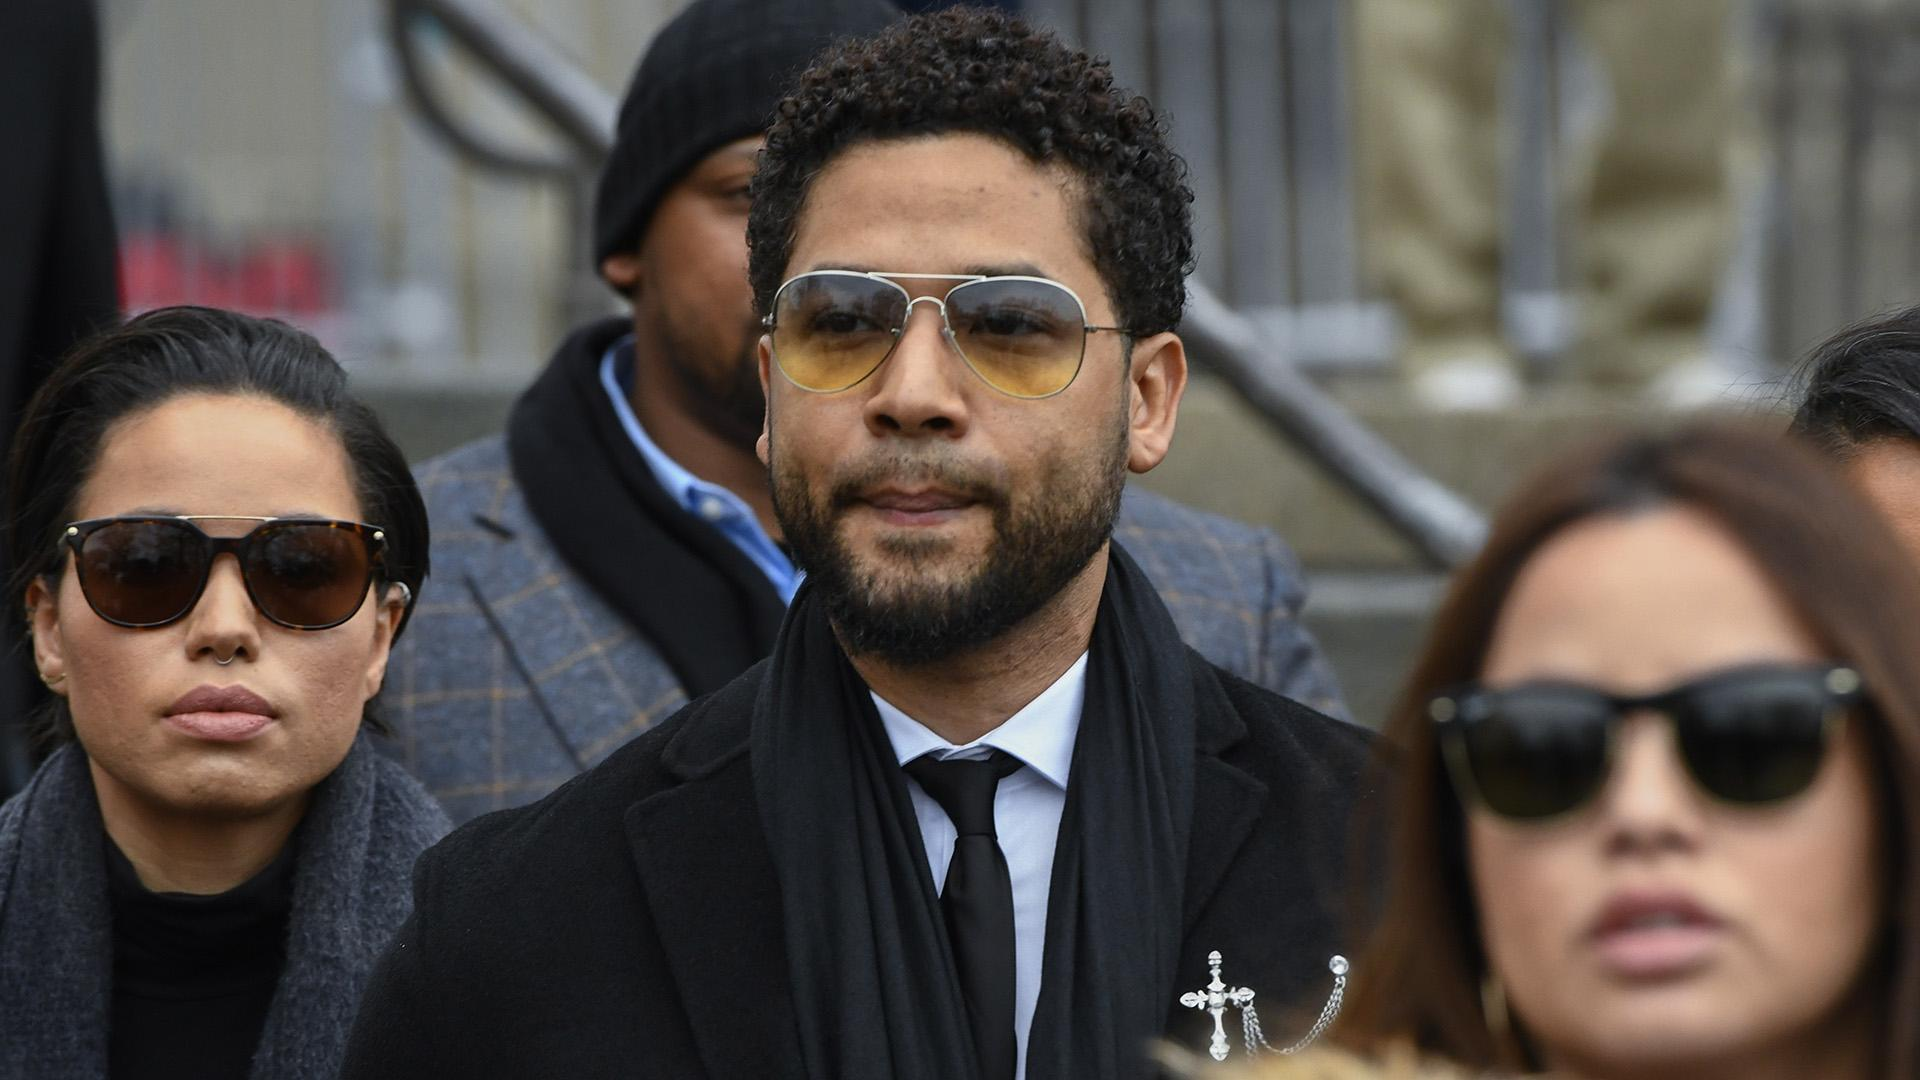 "In this Feb. 24, 2020 file photo, former ""Empire"" actor Jussie Smollett leaves the Leighton Criminal Courthouse in Chicago, after an initial court appearance on a new set of charges alleging that he lied to police about being targeted in a racist and homophobic attack in downtown Chicago early last year. (AP Photo / Matt Marton File)"